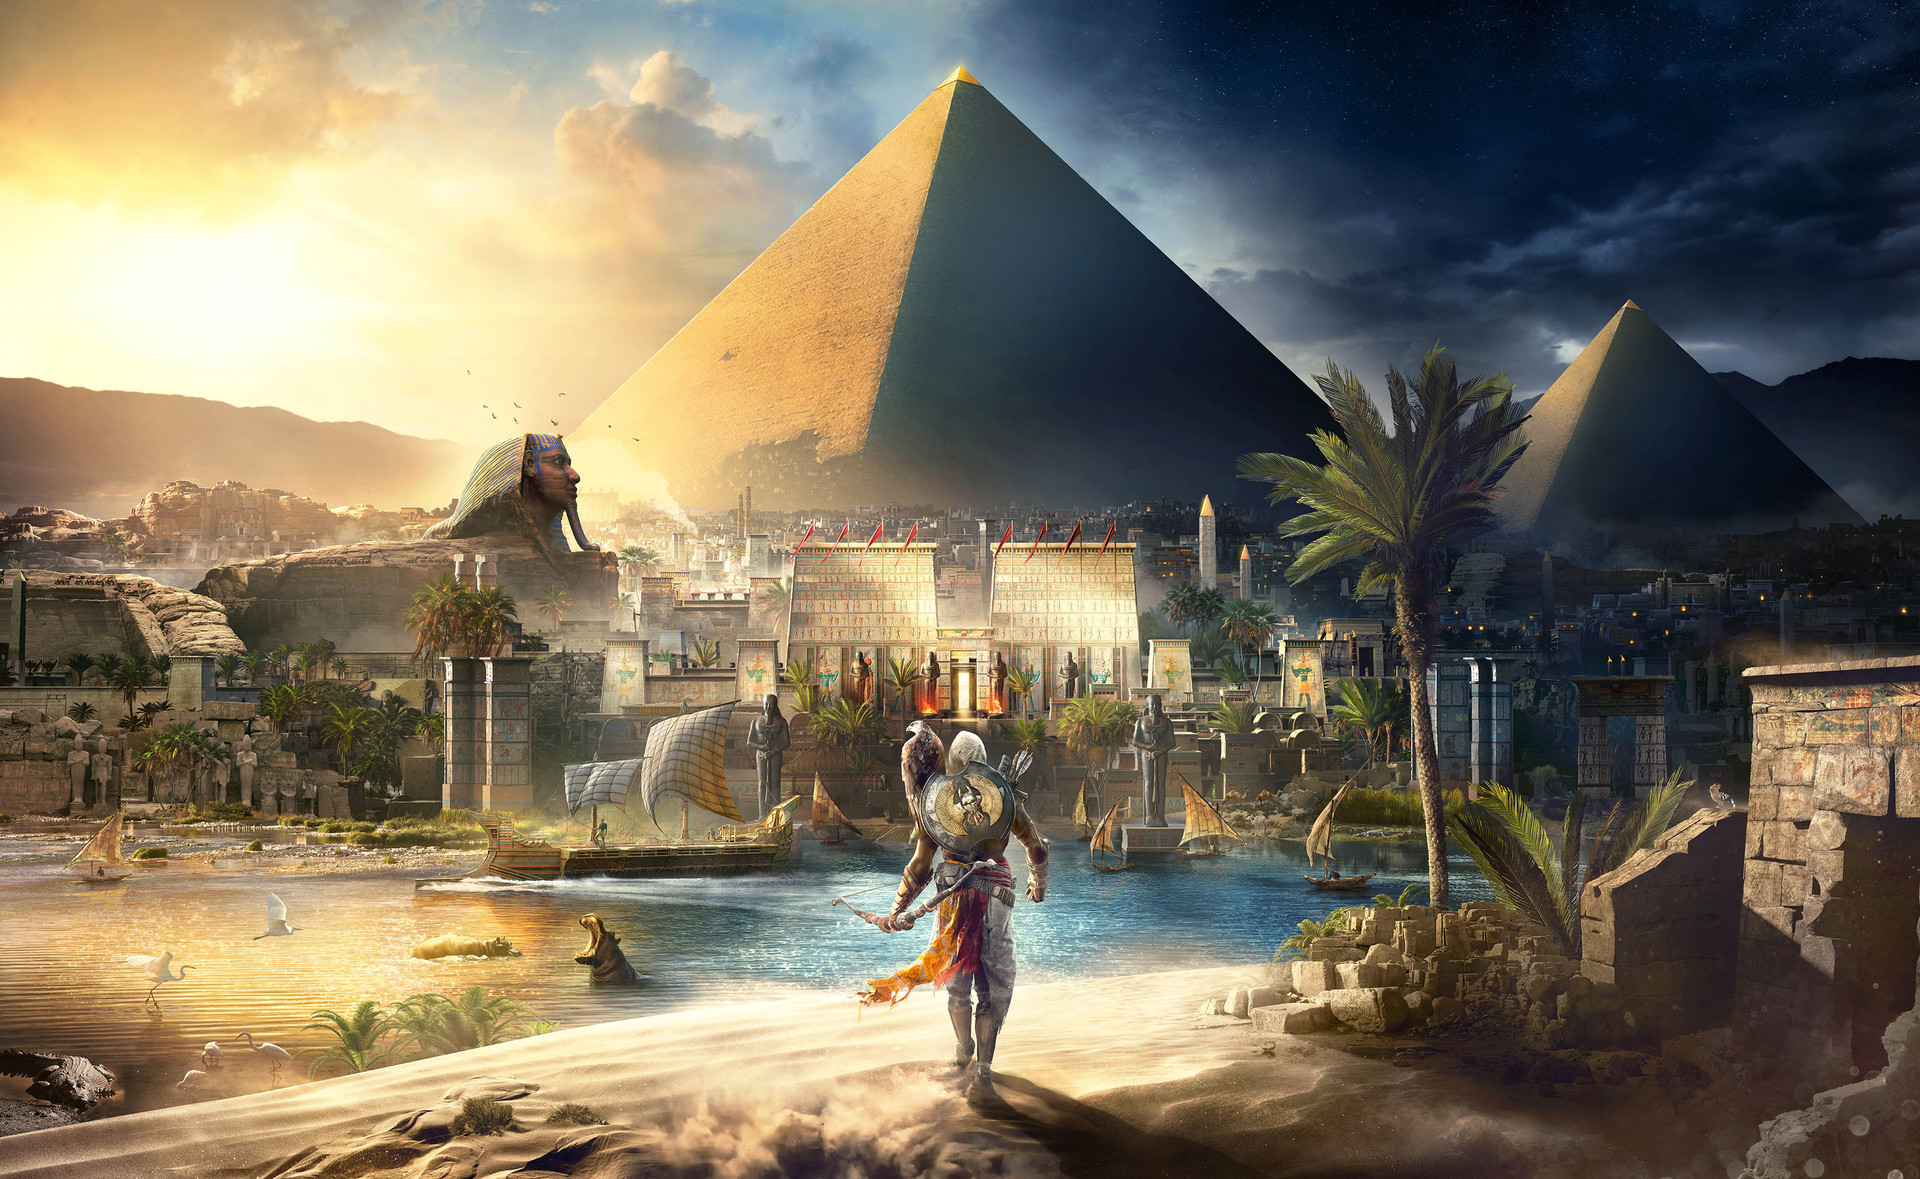 Wil wells wil wells assassins creed origins keyart